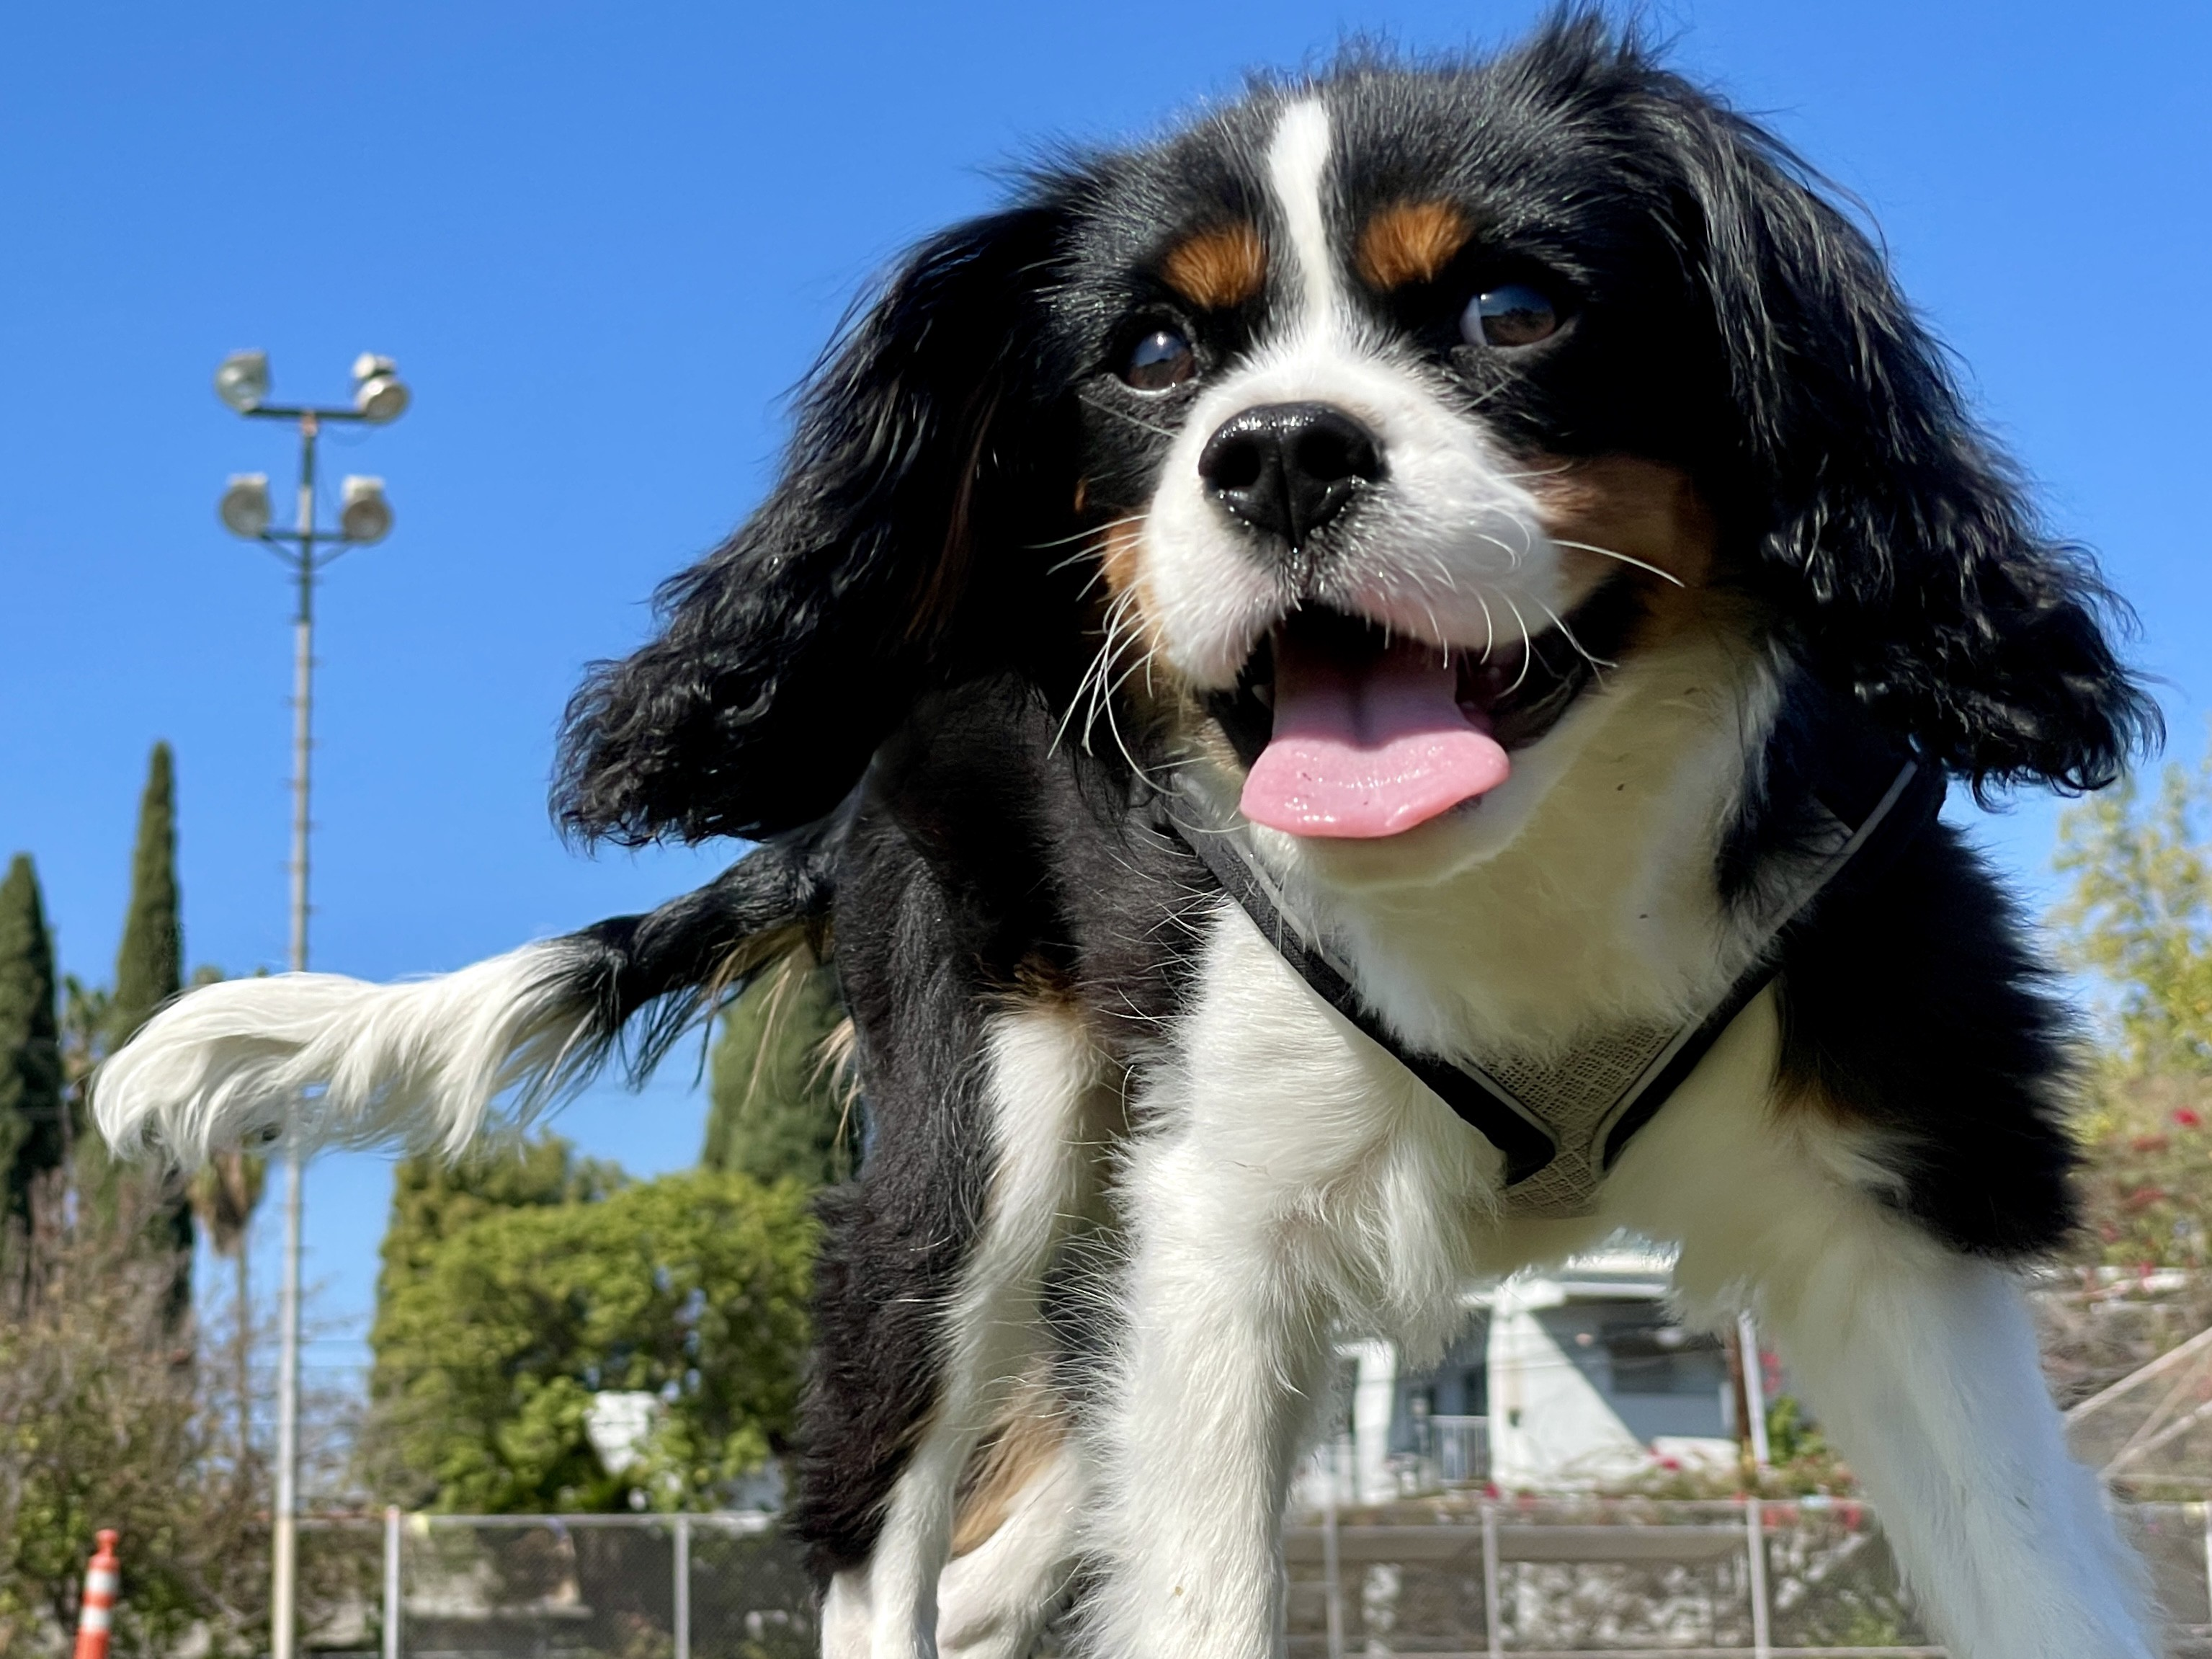 Face on photo of tricolor Cavalier King Charles Spaniel puppy in motion at a park on a sunny day